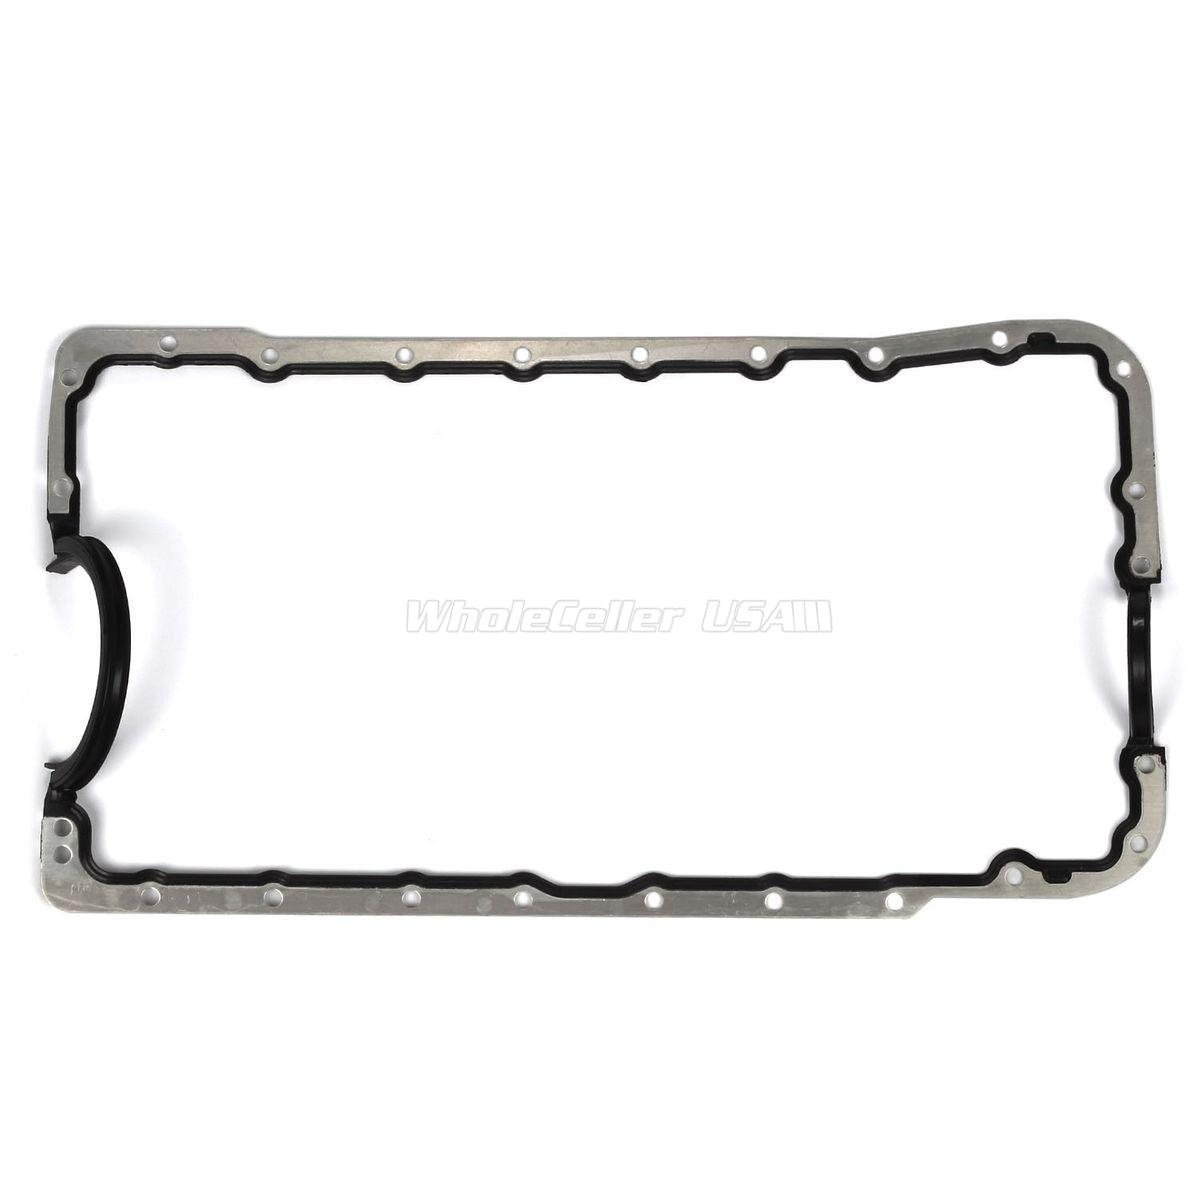 For Ford Mustang For Mazda For Land Rover 97 10 Lower